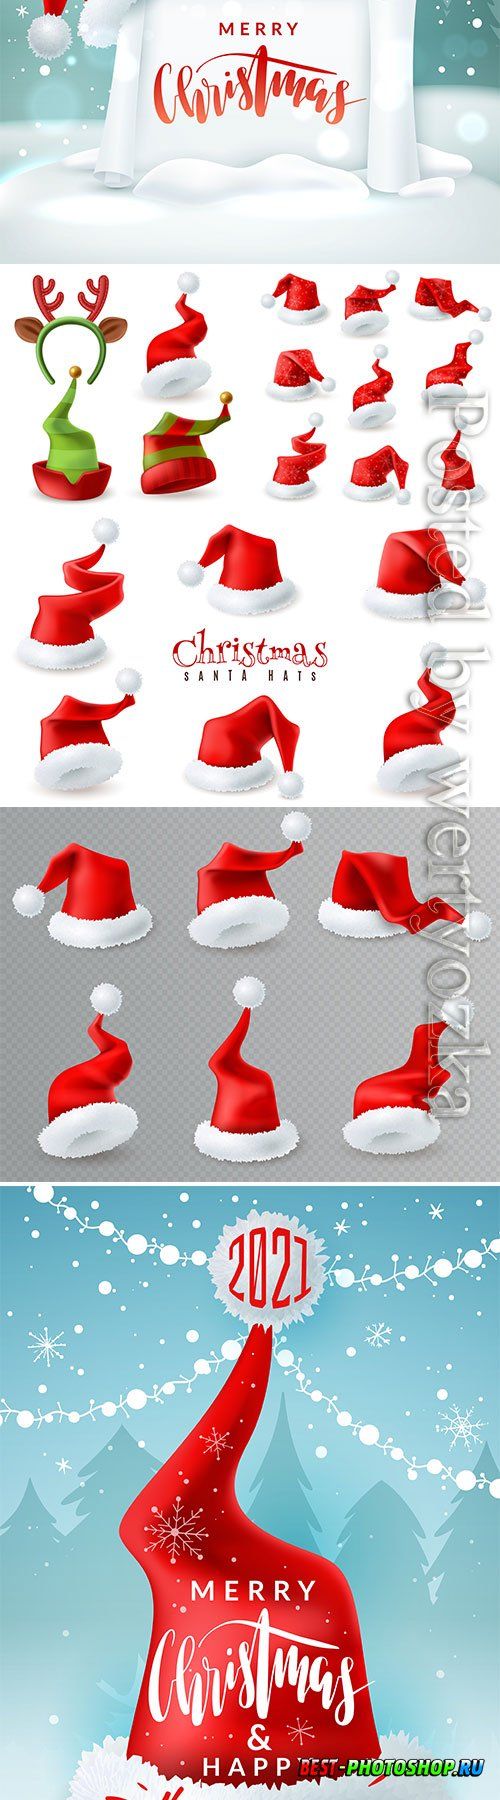 Merry christmas greeting with santa hat illustration vector